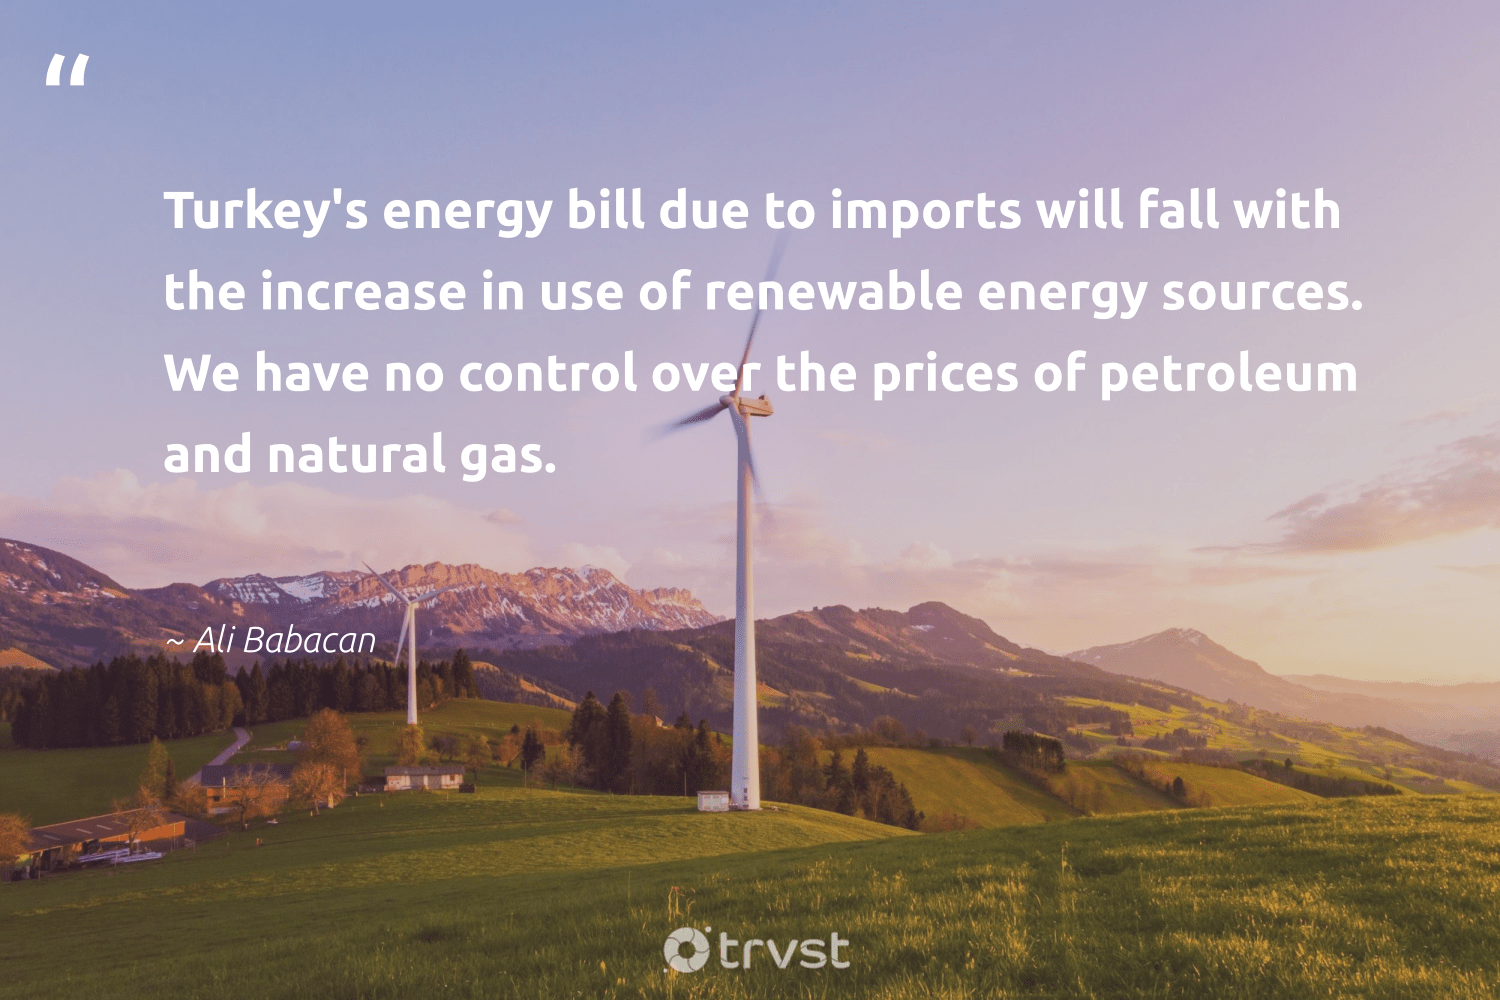 """""""Turkey's energy bill due to imports will fall with the increase in use of renewable energy sources. We have no control over the prices of petroleum and natural gas.""""  - Ali Babacan #trvst #quotes #renewableenergy #energy #renewable #gas #natural #100percentrenewable #greenenergy #livegreen #sustainable #bethechange"""